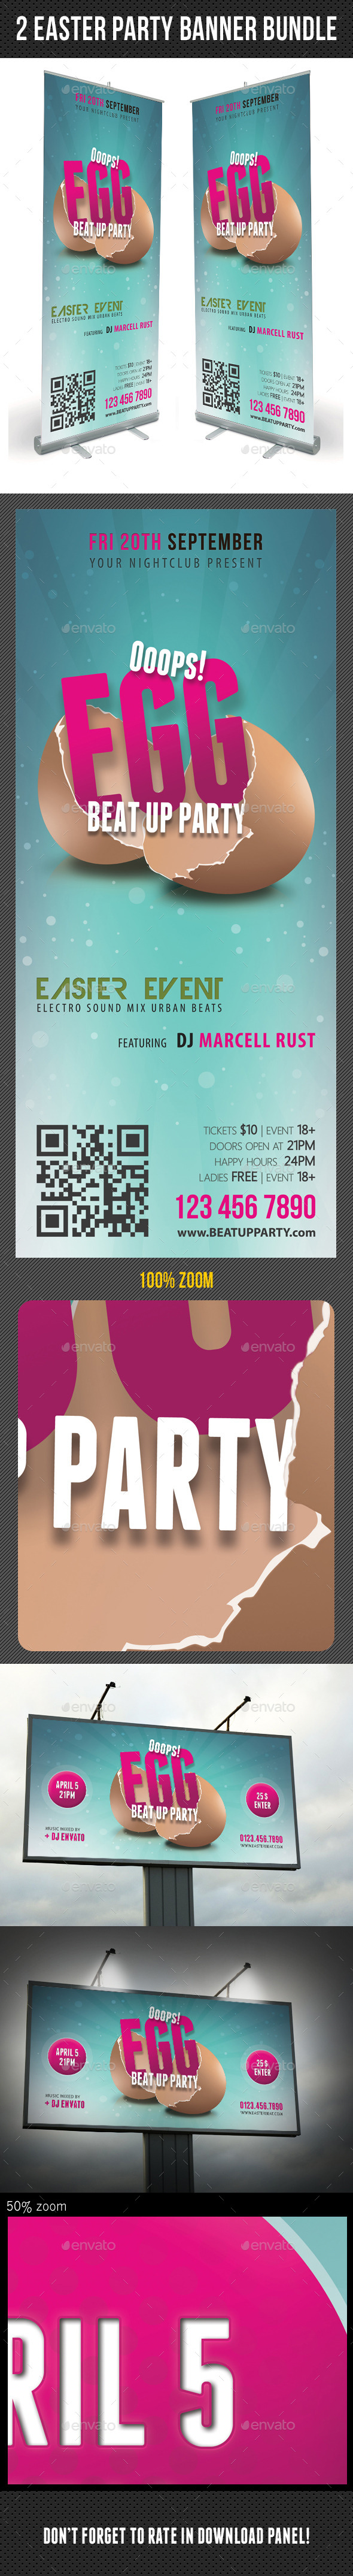 2 in 1 Easter Break Up Party Banner Bundle - Signage Print Templates